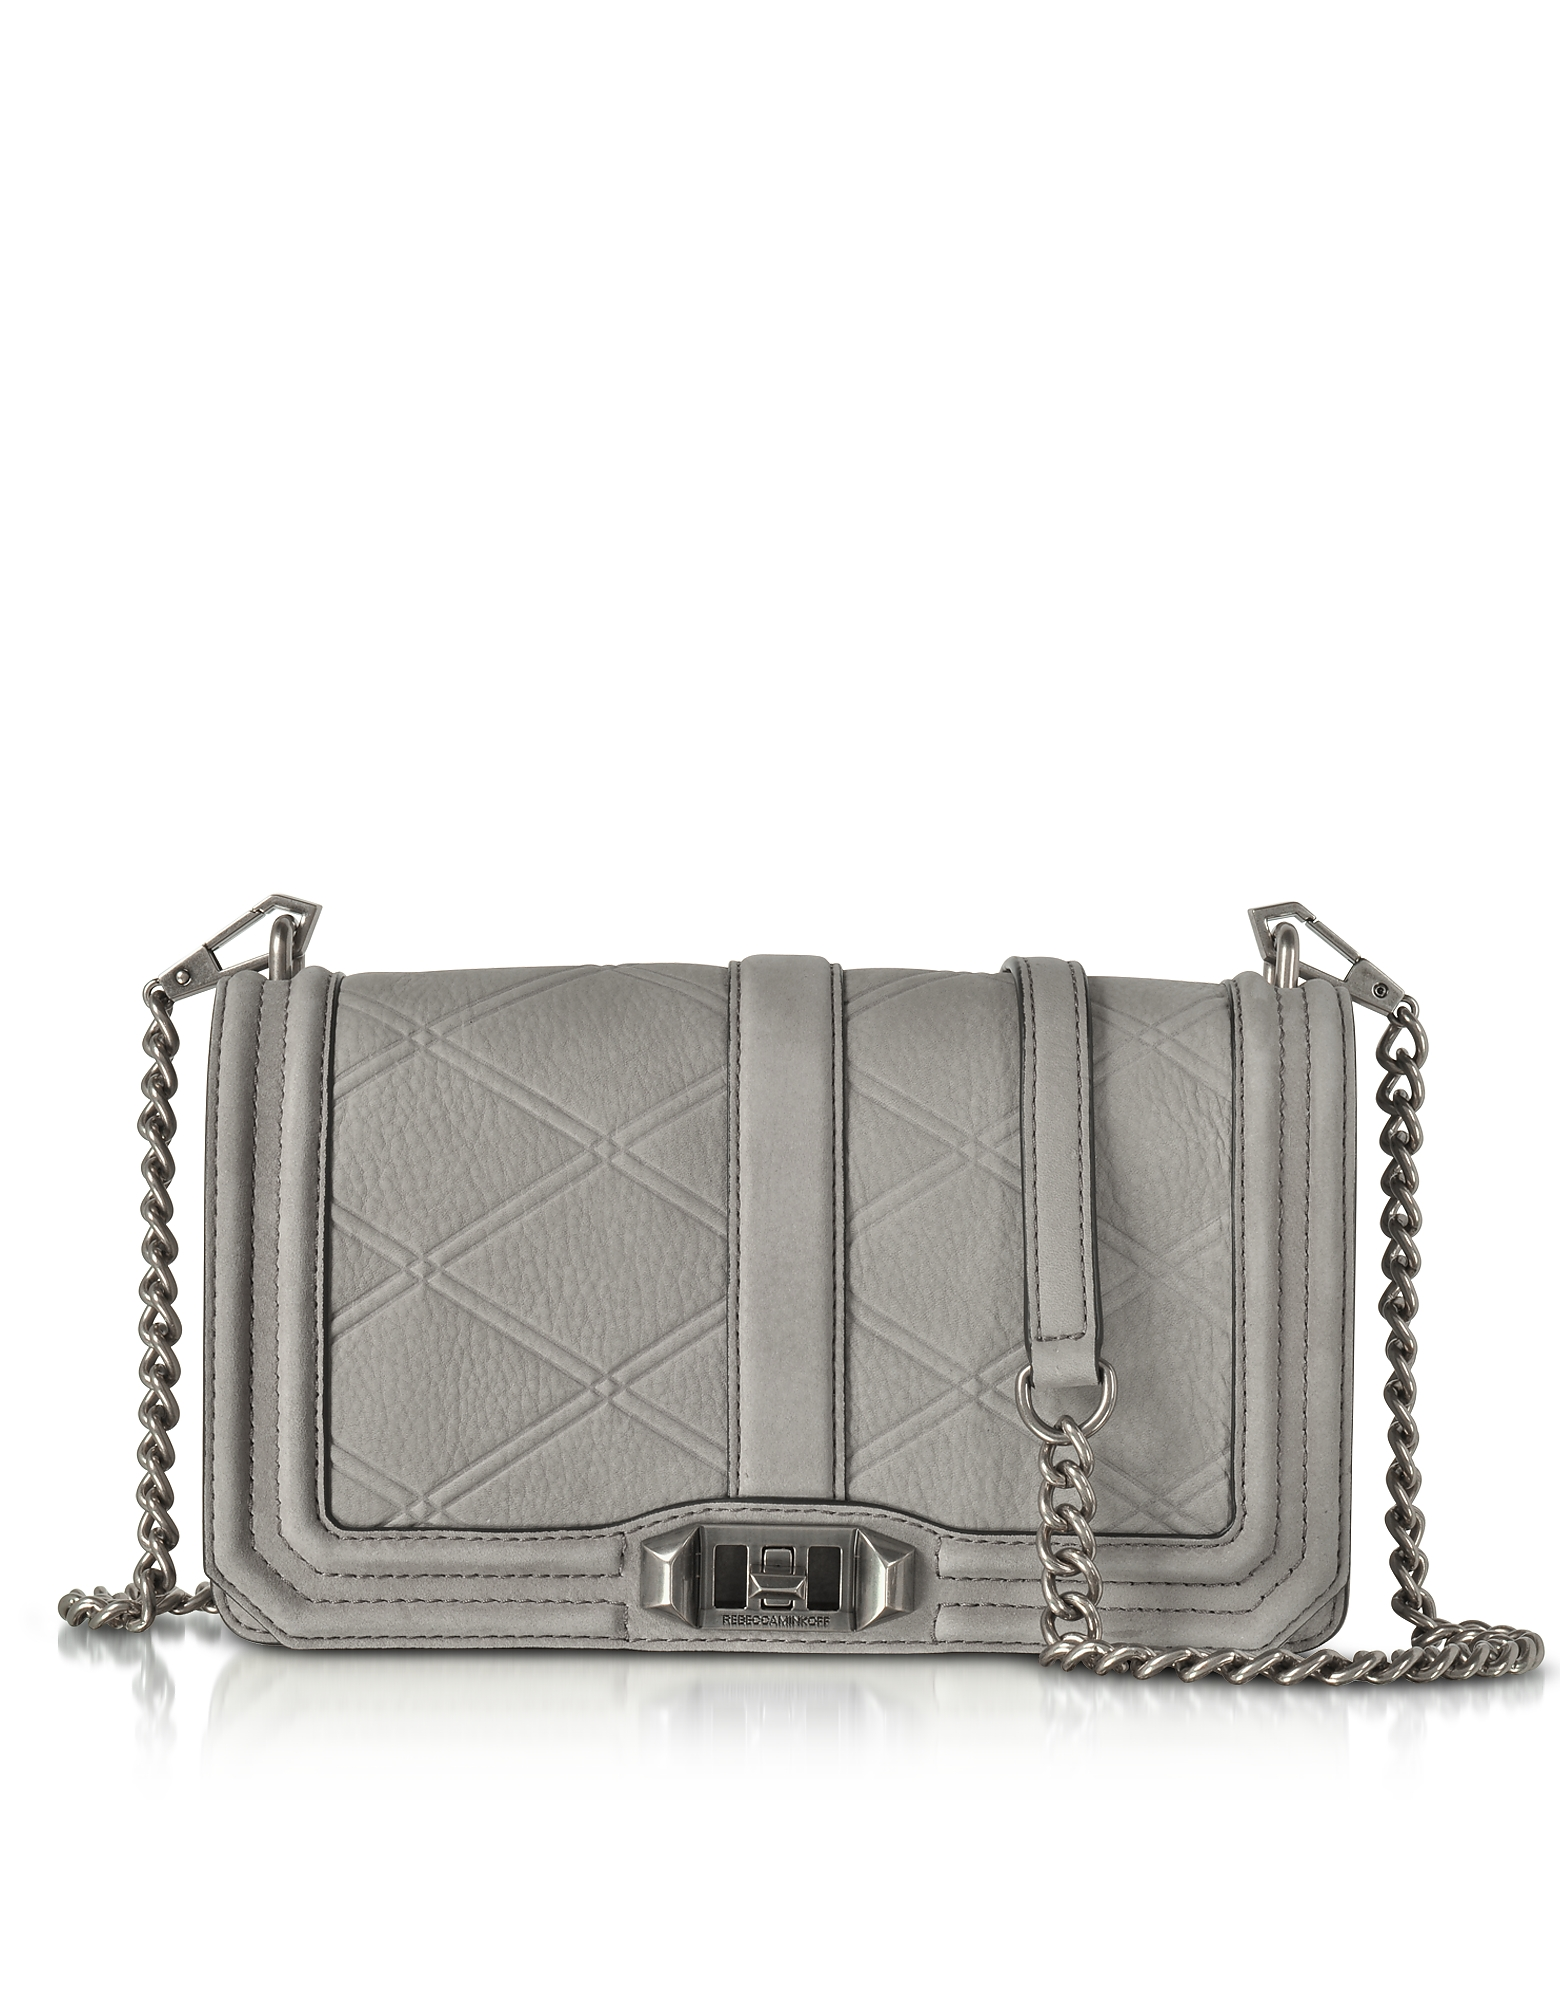 Rebecca Minkoff Embossed Nubuck Love Crossbody Bag